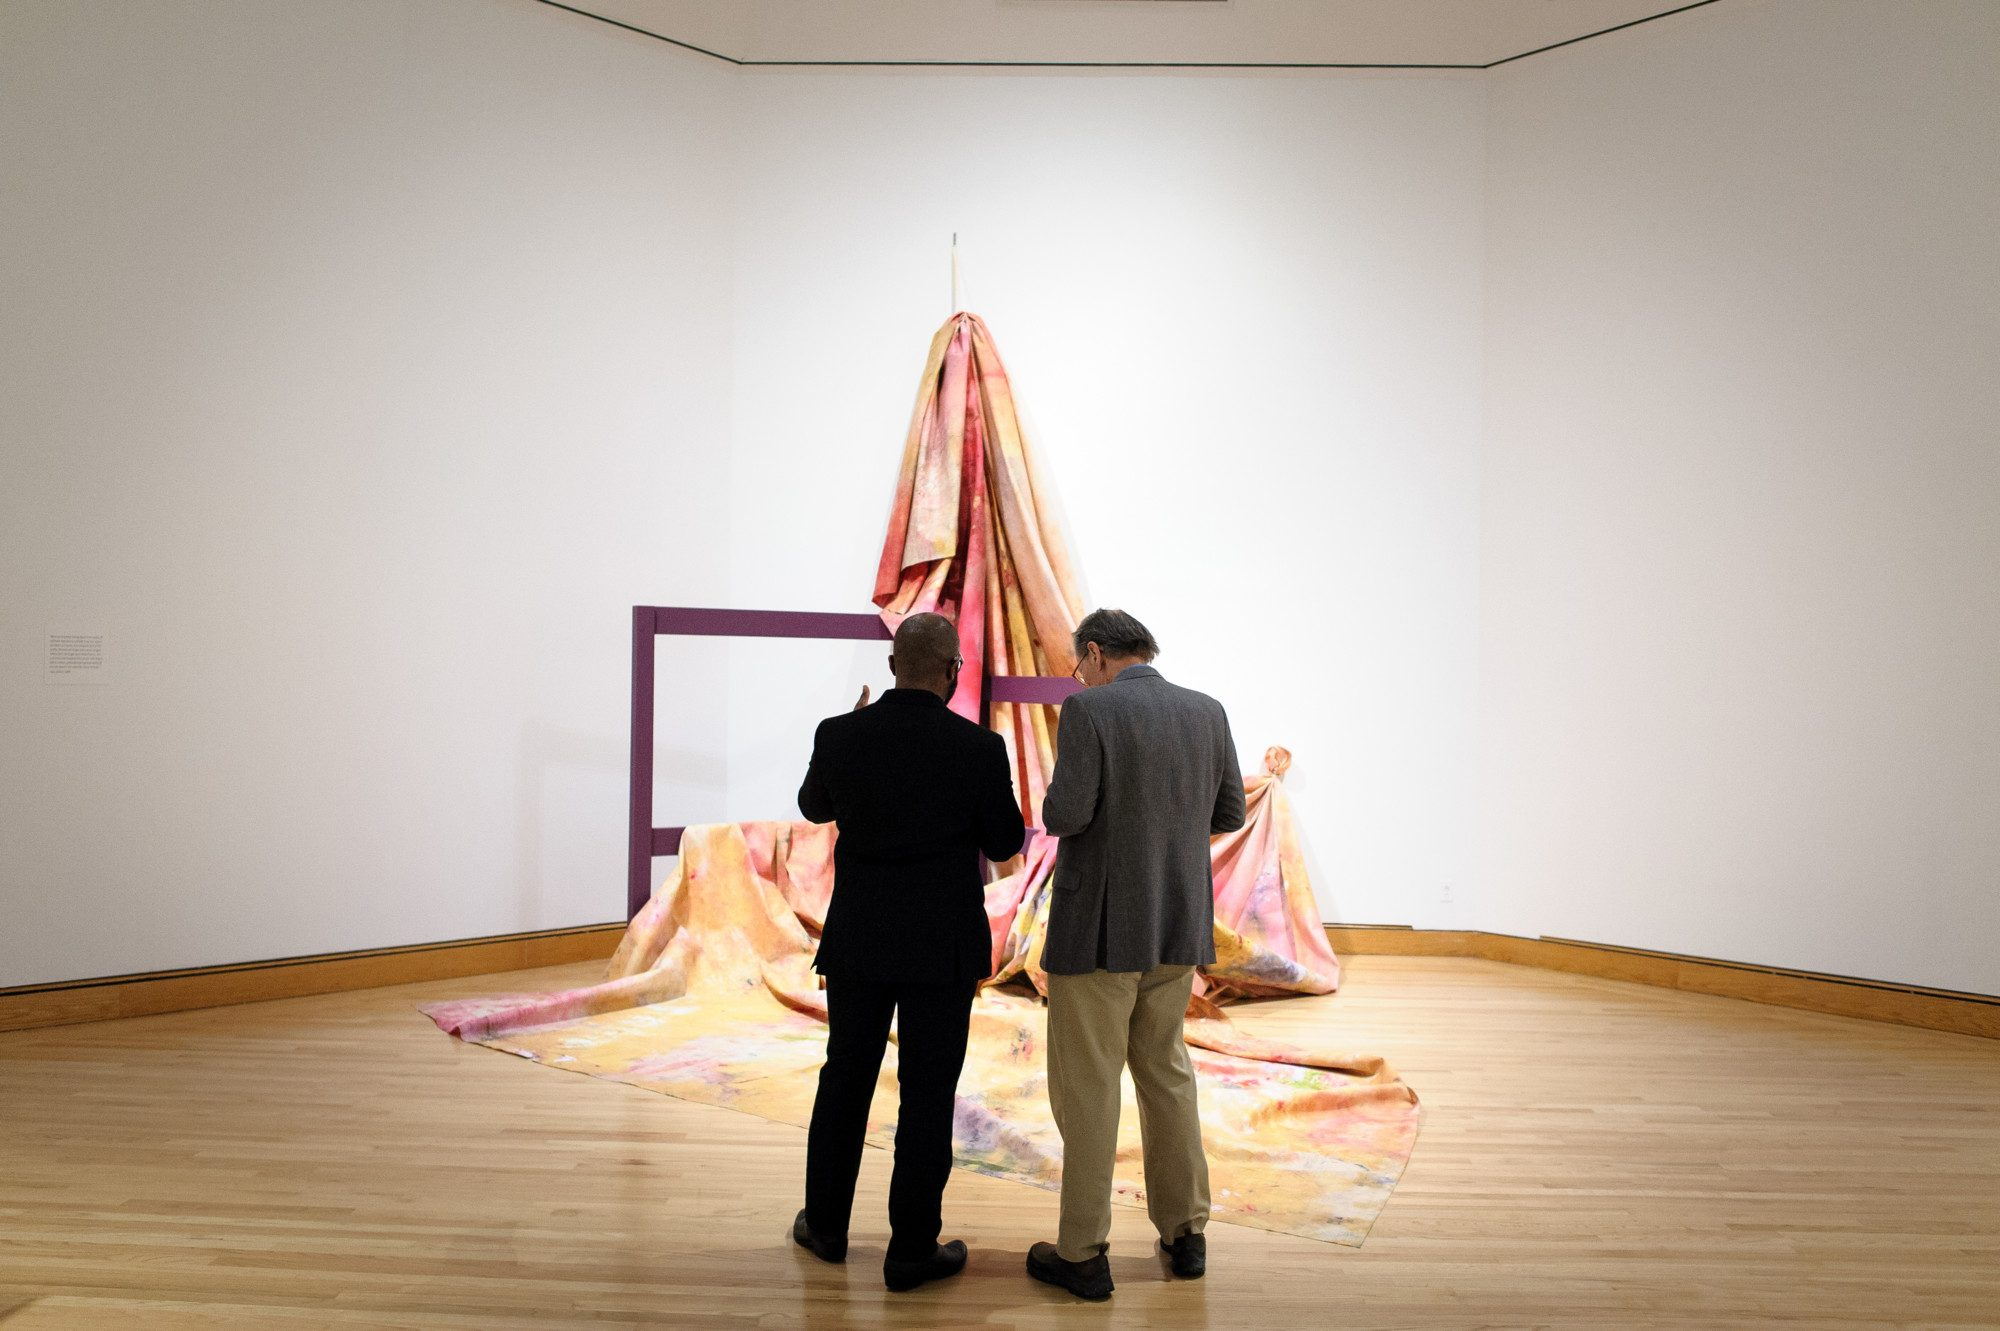 Installation view of Situation VI–Pisces 4, c. 1972 by Sam Gilliam. Photo by Bradley Wakoff.